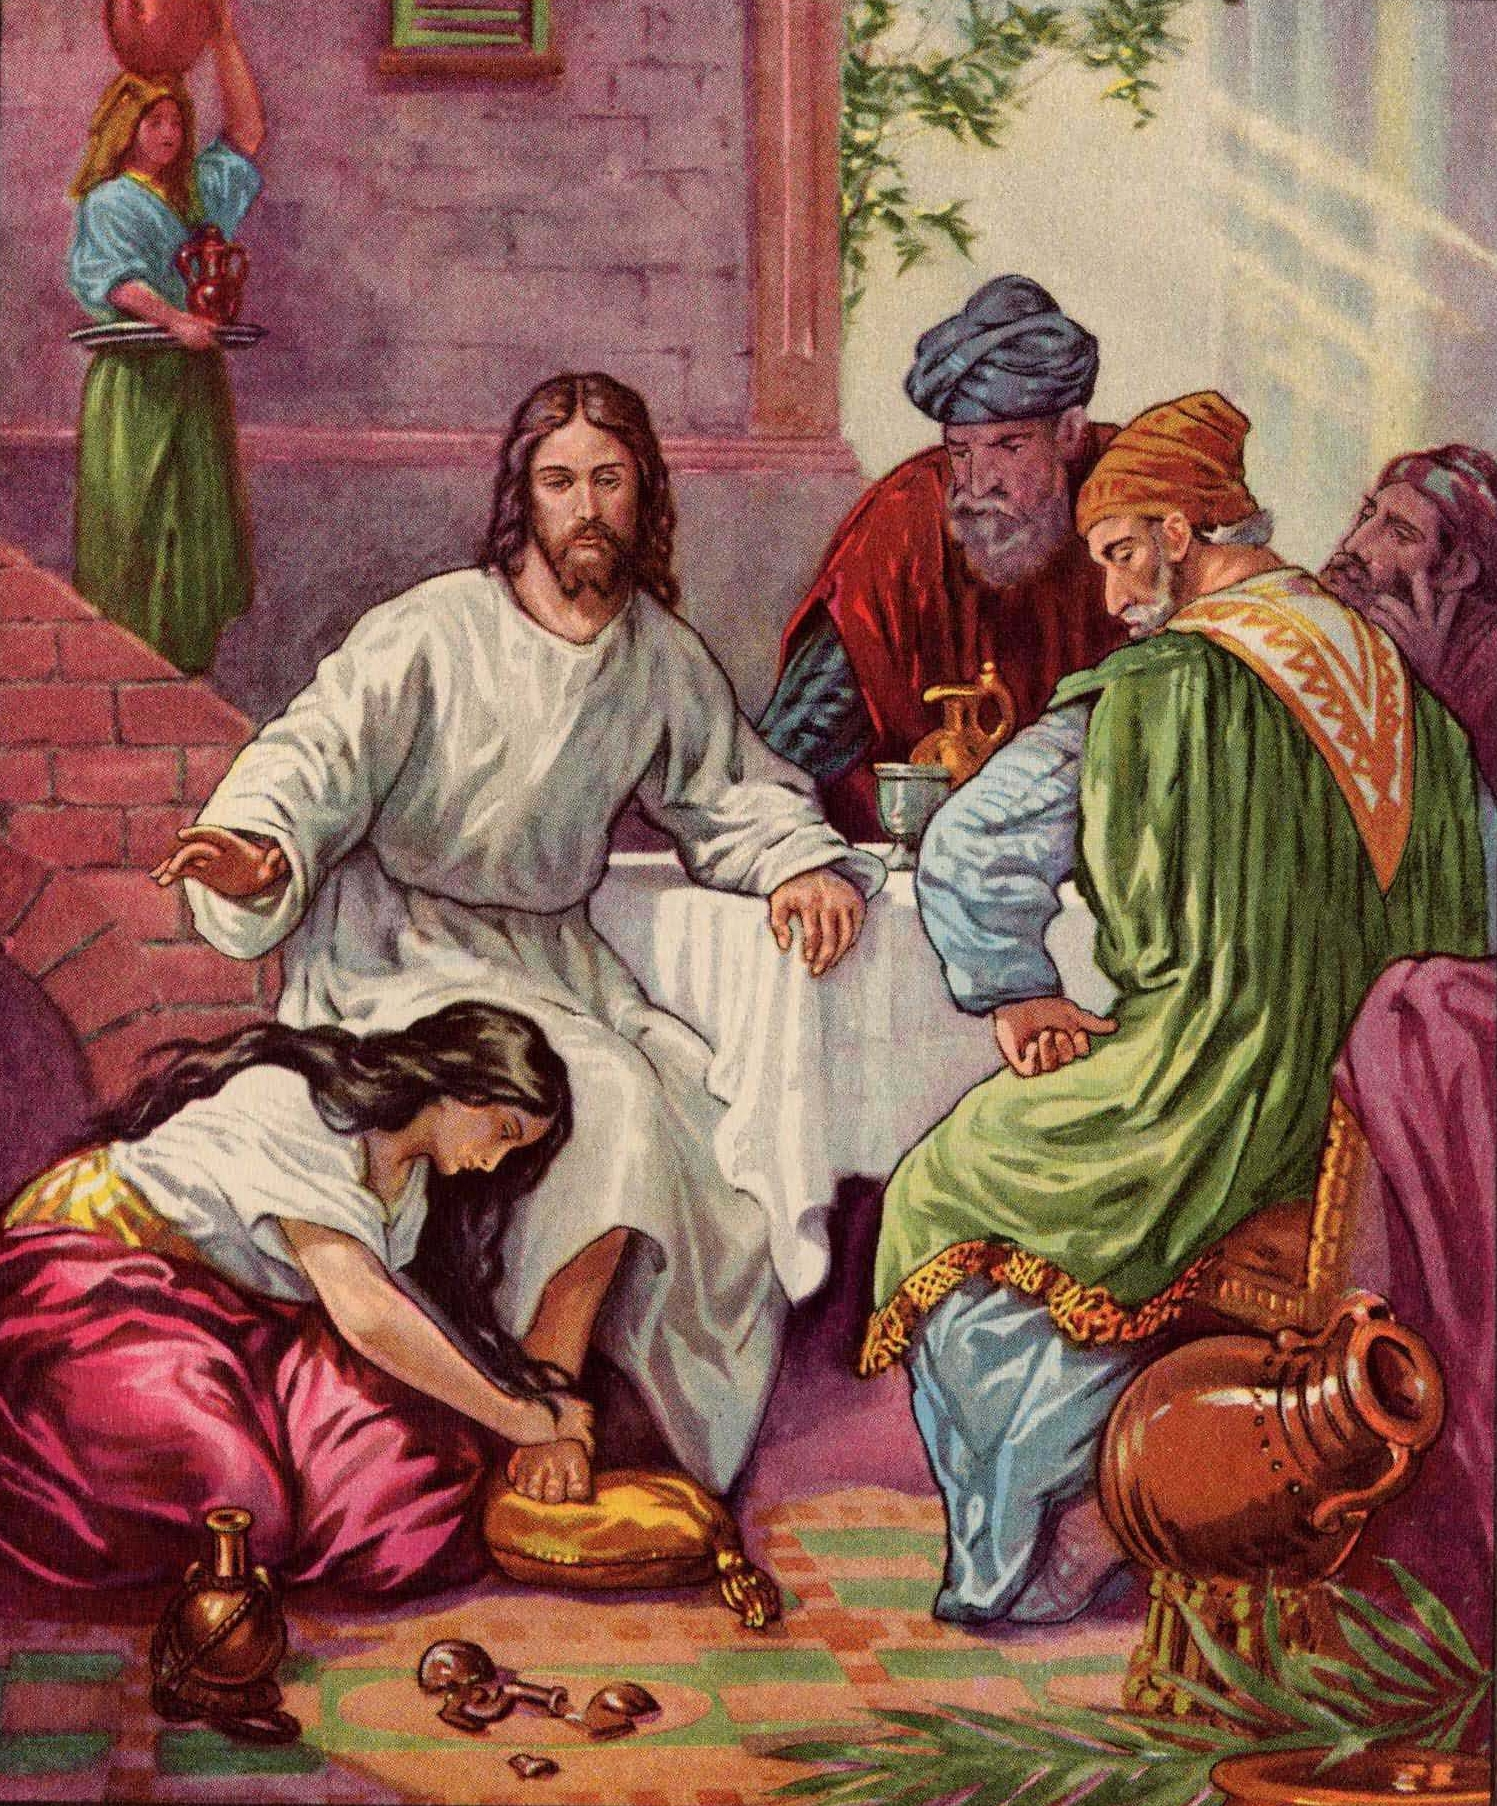 an understanding of the sinful woman who washed jesus feet with her hair The woman who anointed jesus by mary jane chaignot categories: women in the bible question in luke7:36-50, luke mentions the account of a woman who washed jesus feet while he was a dinner guest at the home of simon the pharisee.